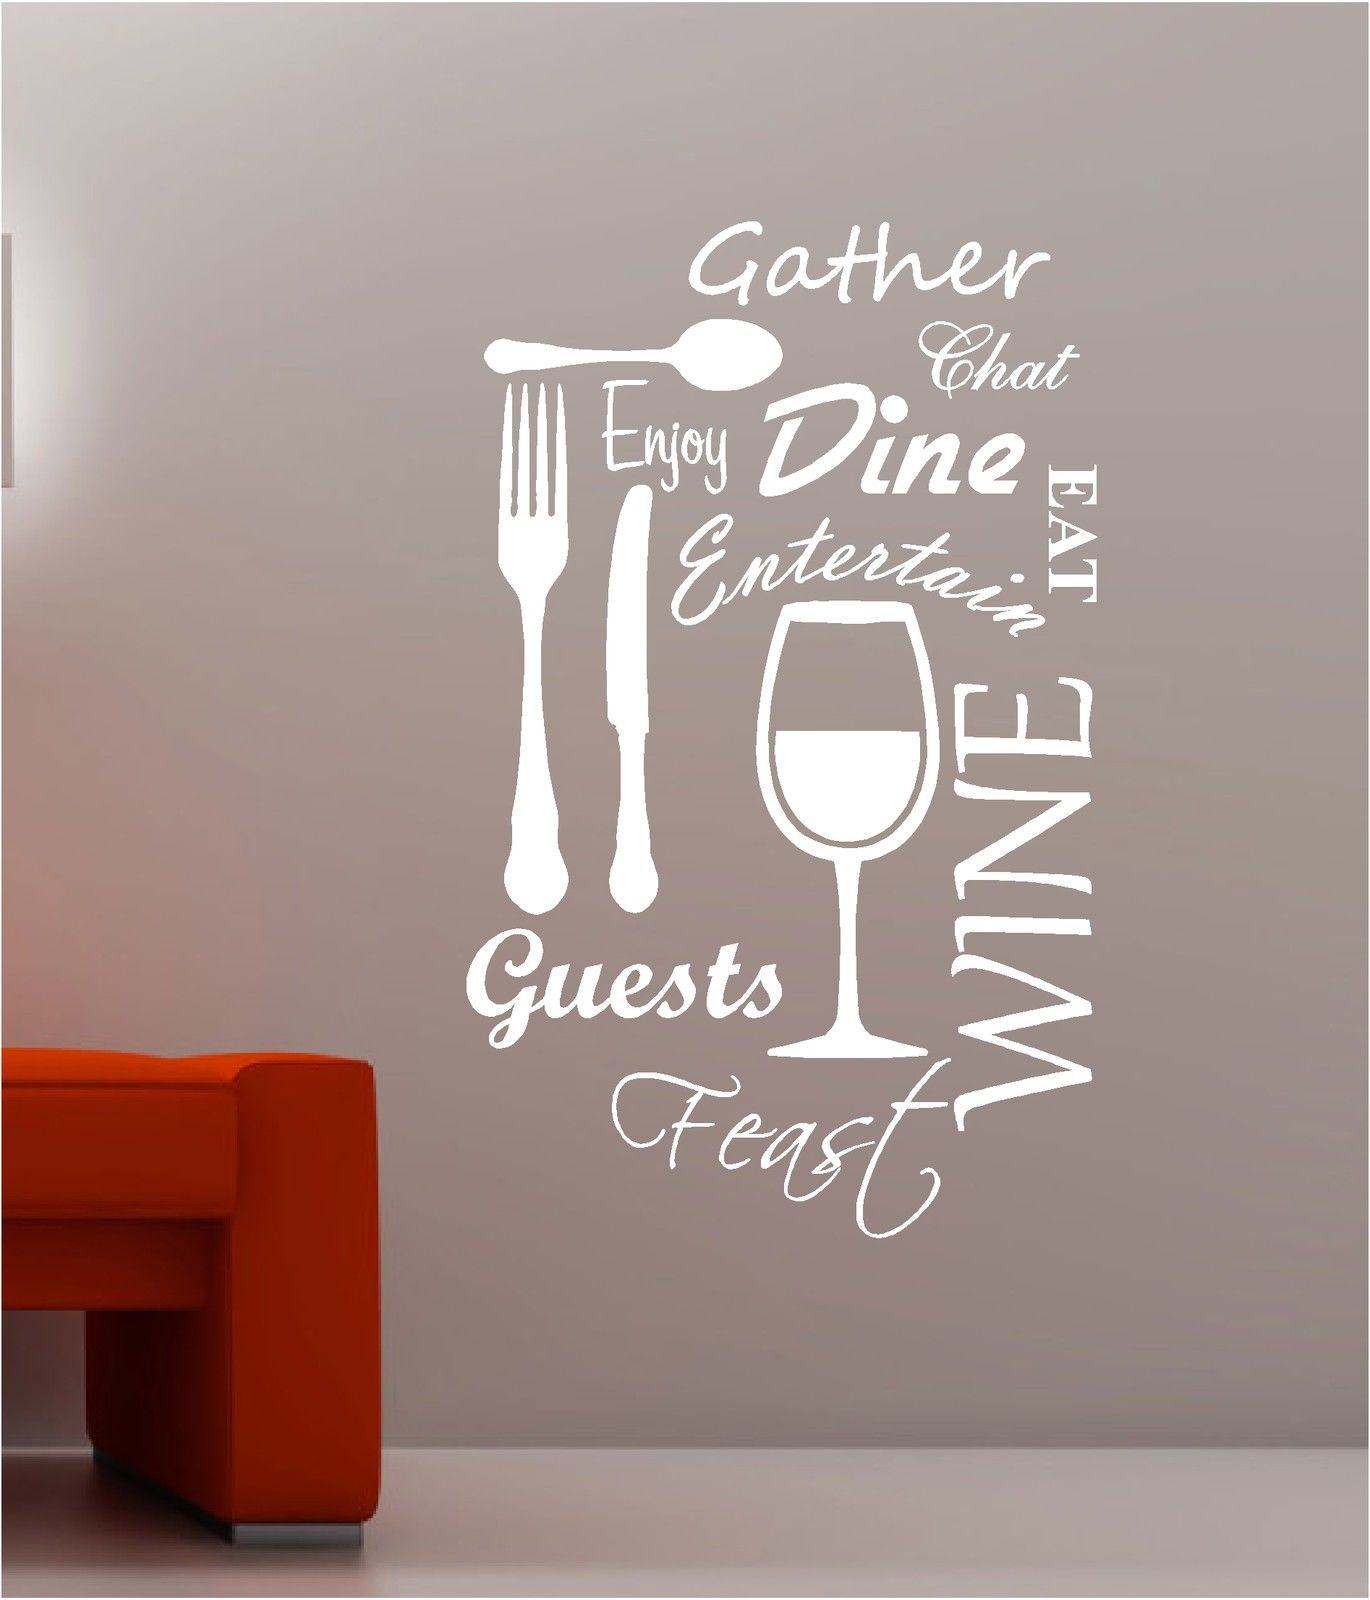 Wall art kitchen quotes - B43 Kitchen Word Cloud Vinyl Wall Art Quote Sticker Dining Food Wine China Mainland